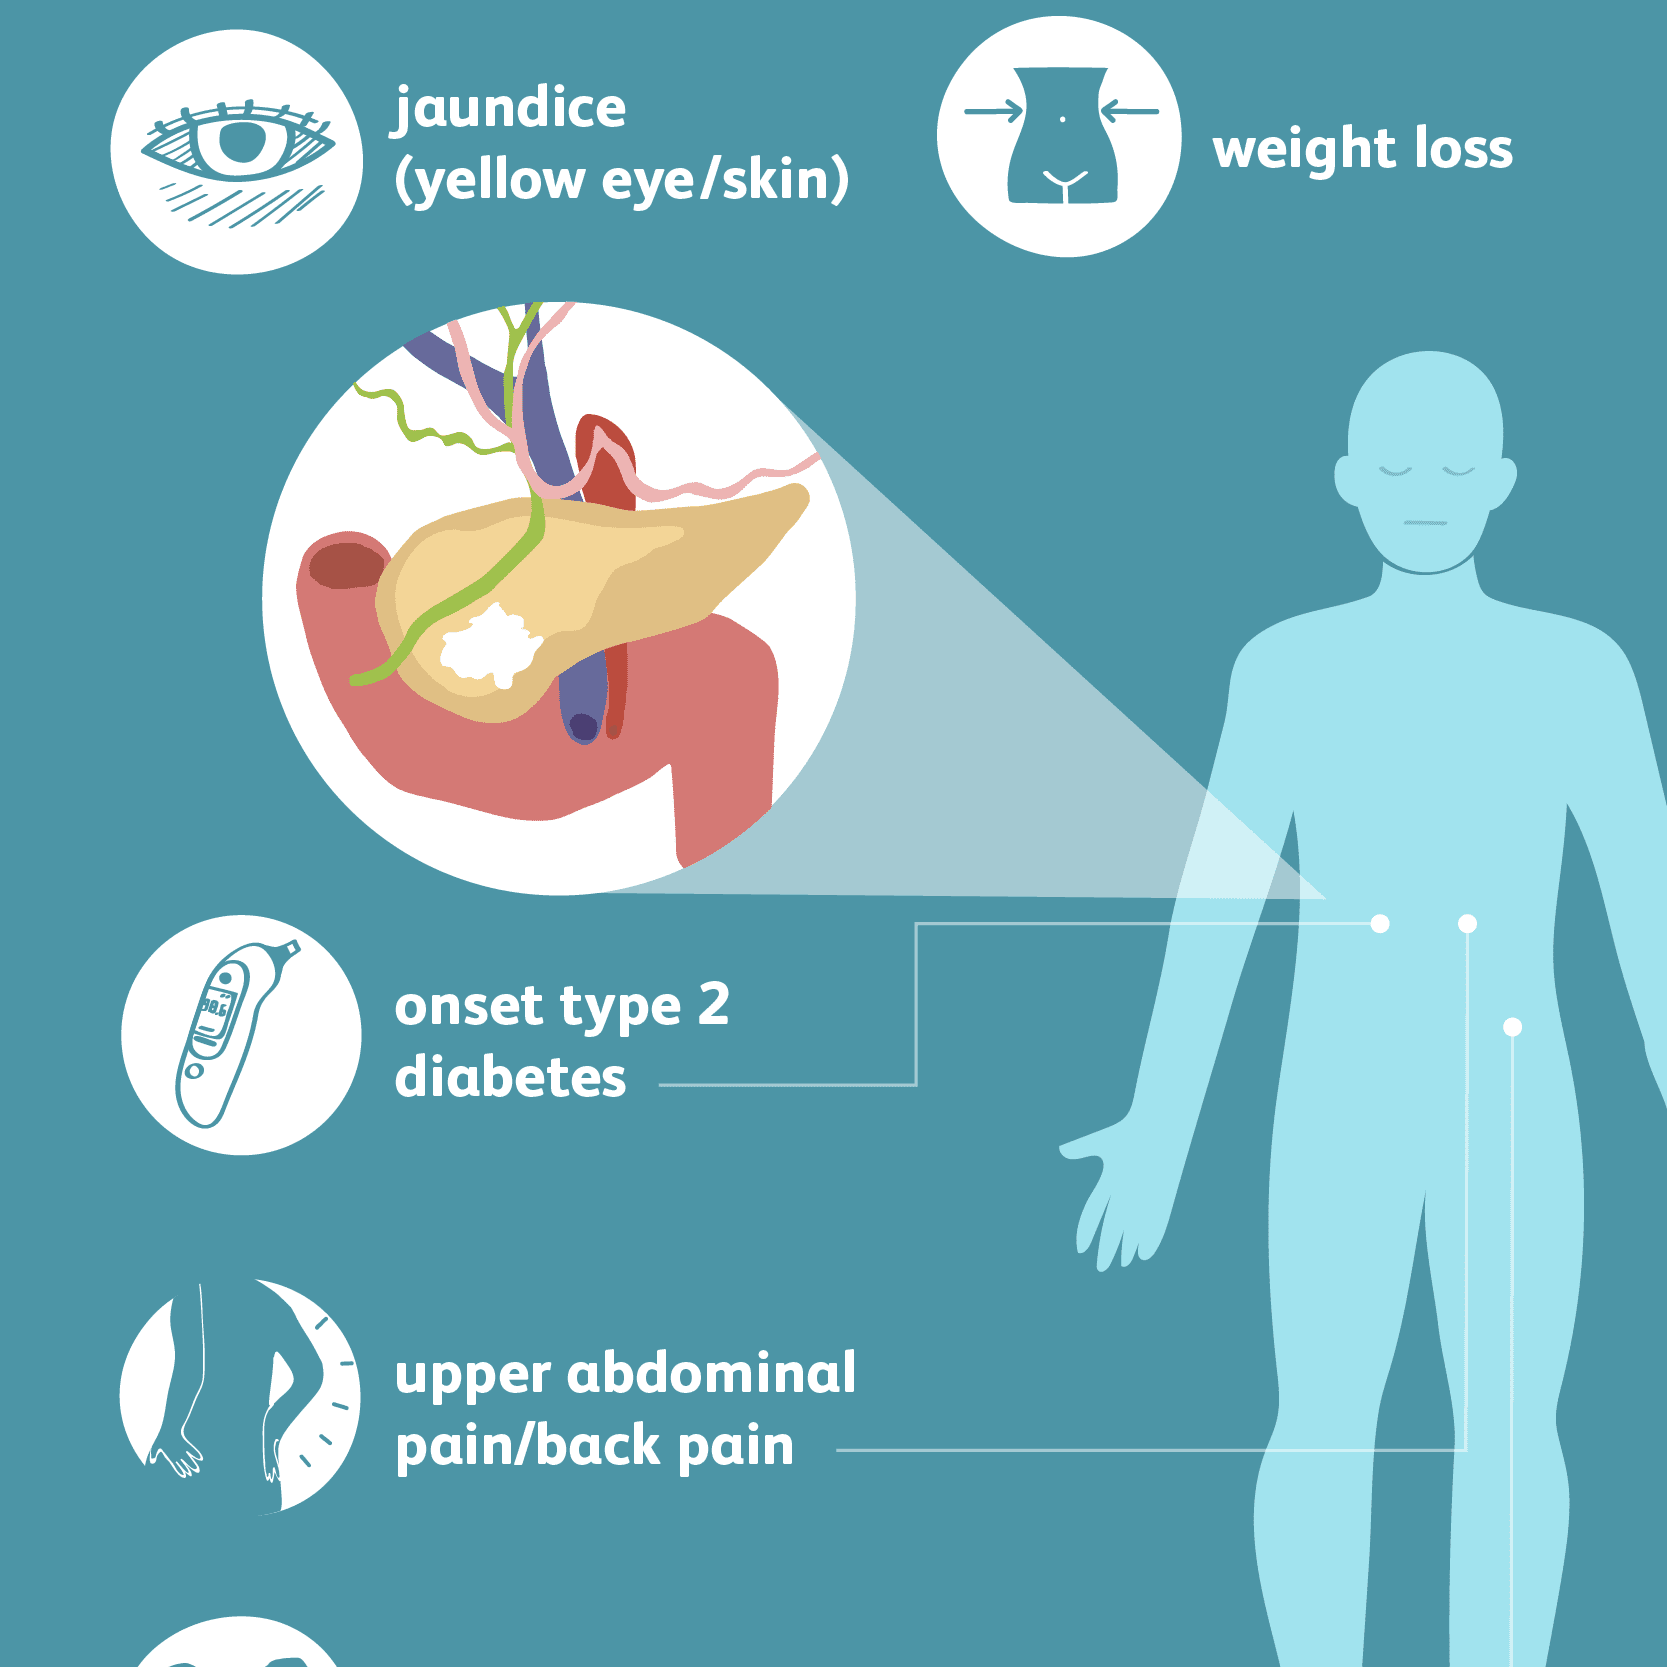 Pancreatic Cancer: Signs, Symptoms, and Complications